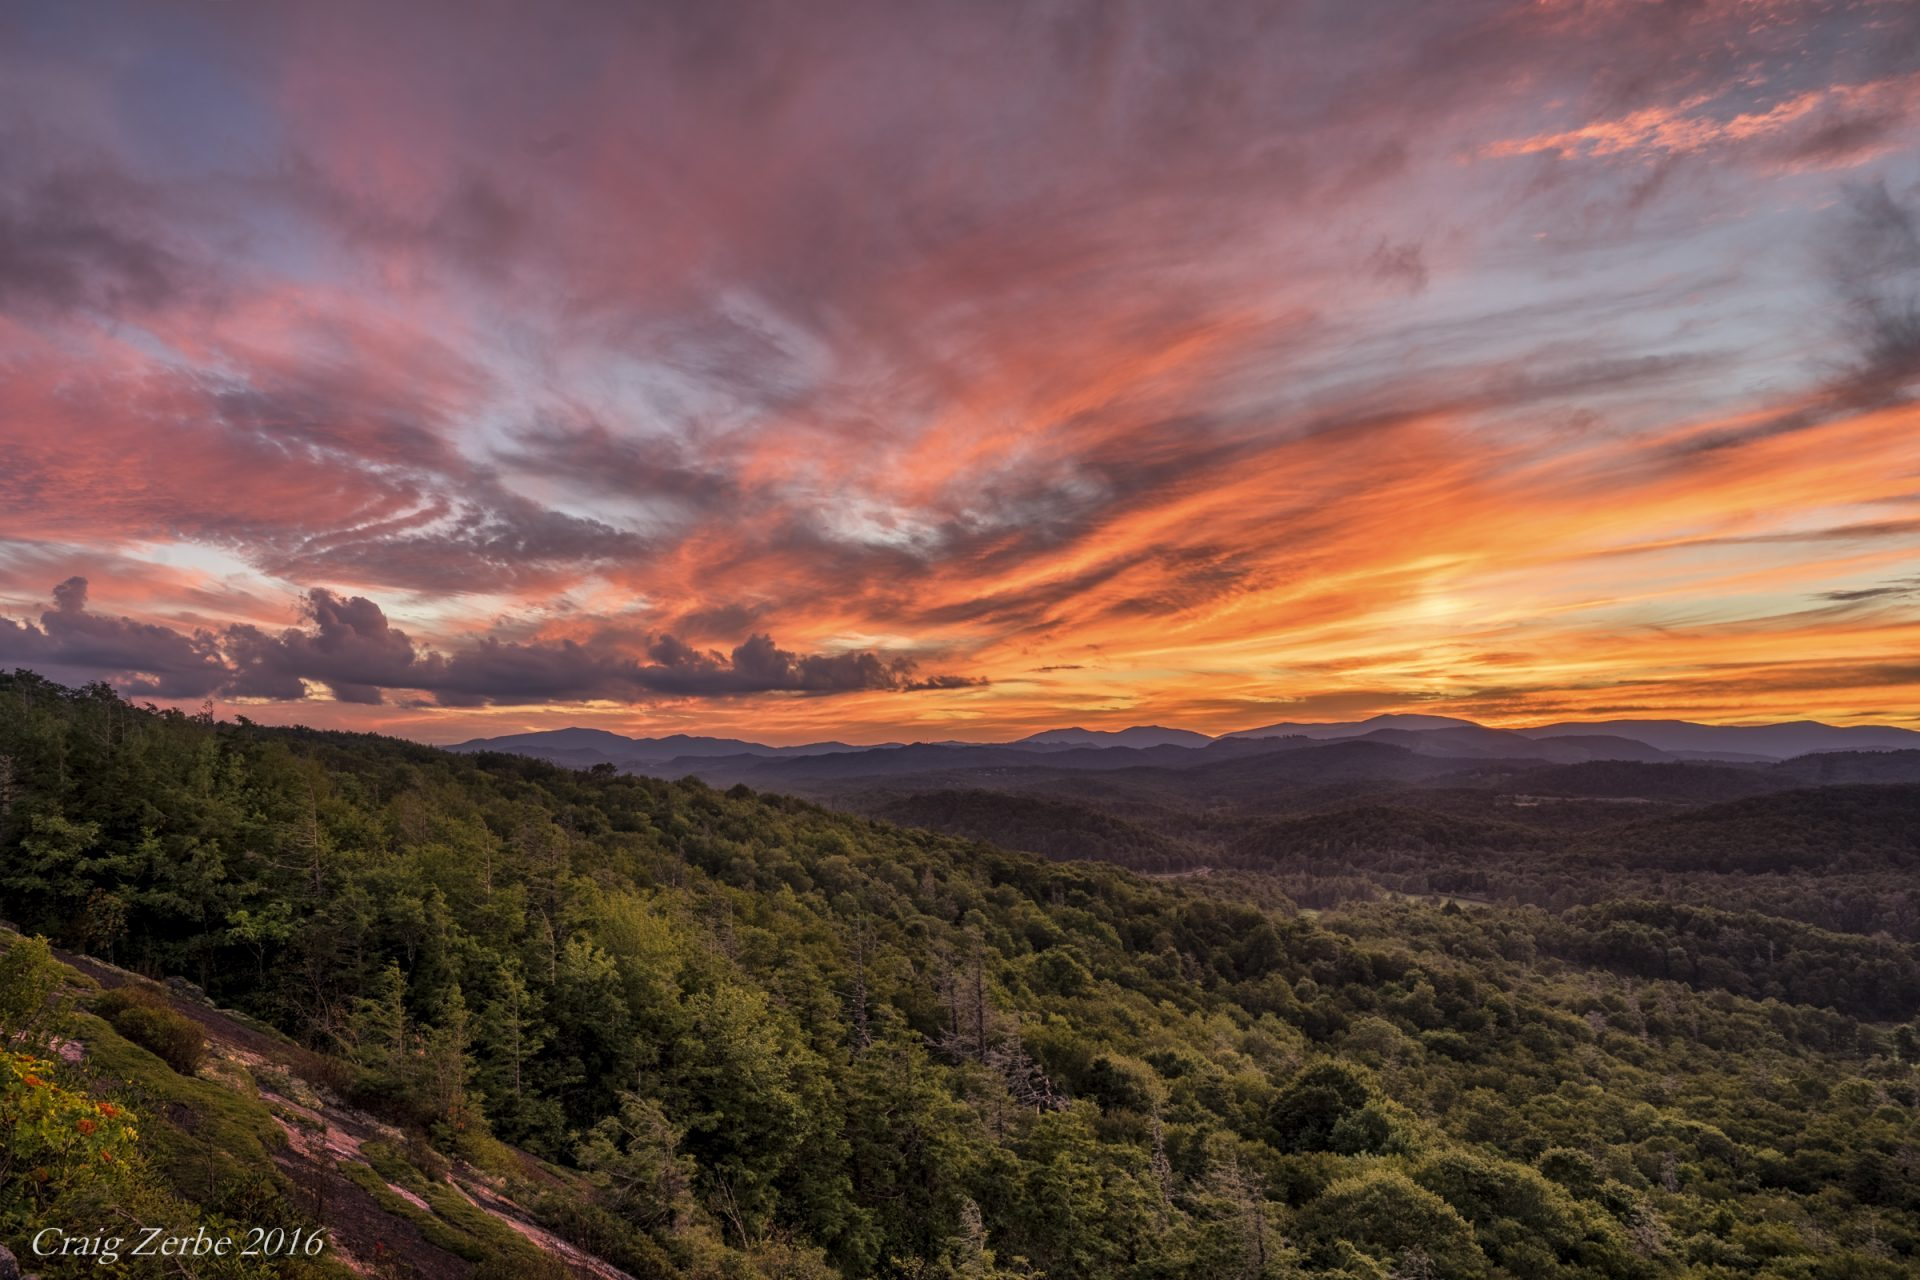 Fall Mountaons In The Sun Wallpaper Quot Sunset At Flat Rock Overlook Milepost 308 3 Quot By Craig Zerbe